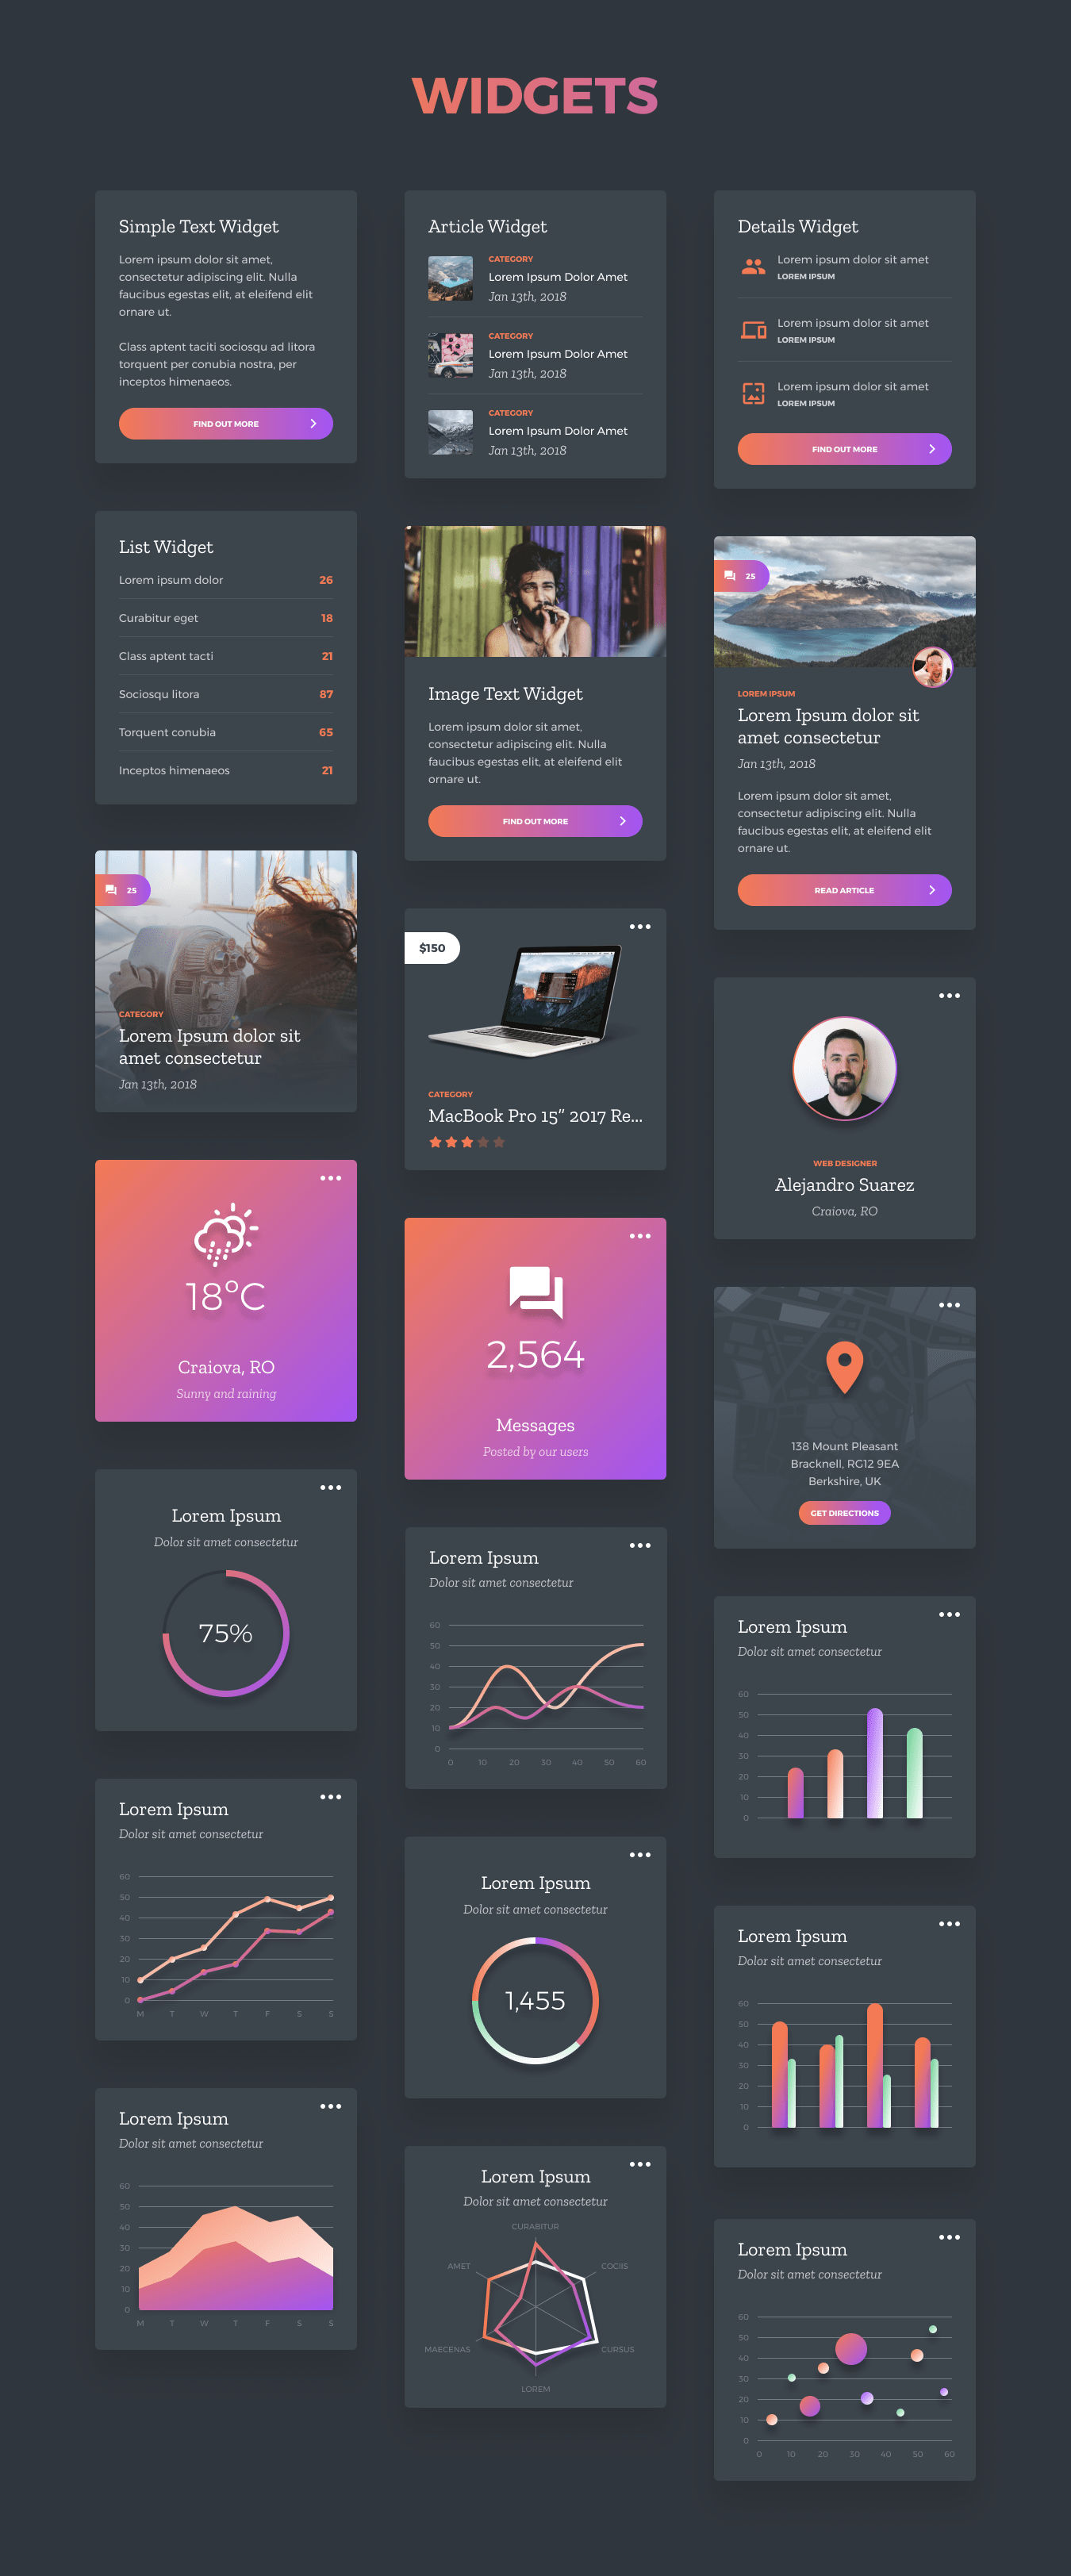 Grada Free Figma UI Kit - I've been working on a little Figma asset that I thought I could share with the community. It's a pretty rich UI kit. Hope you like it and find it useful!